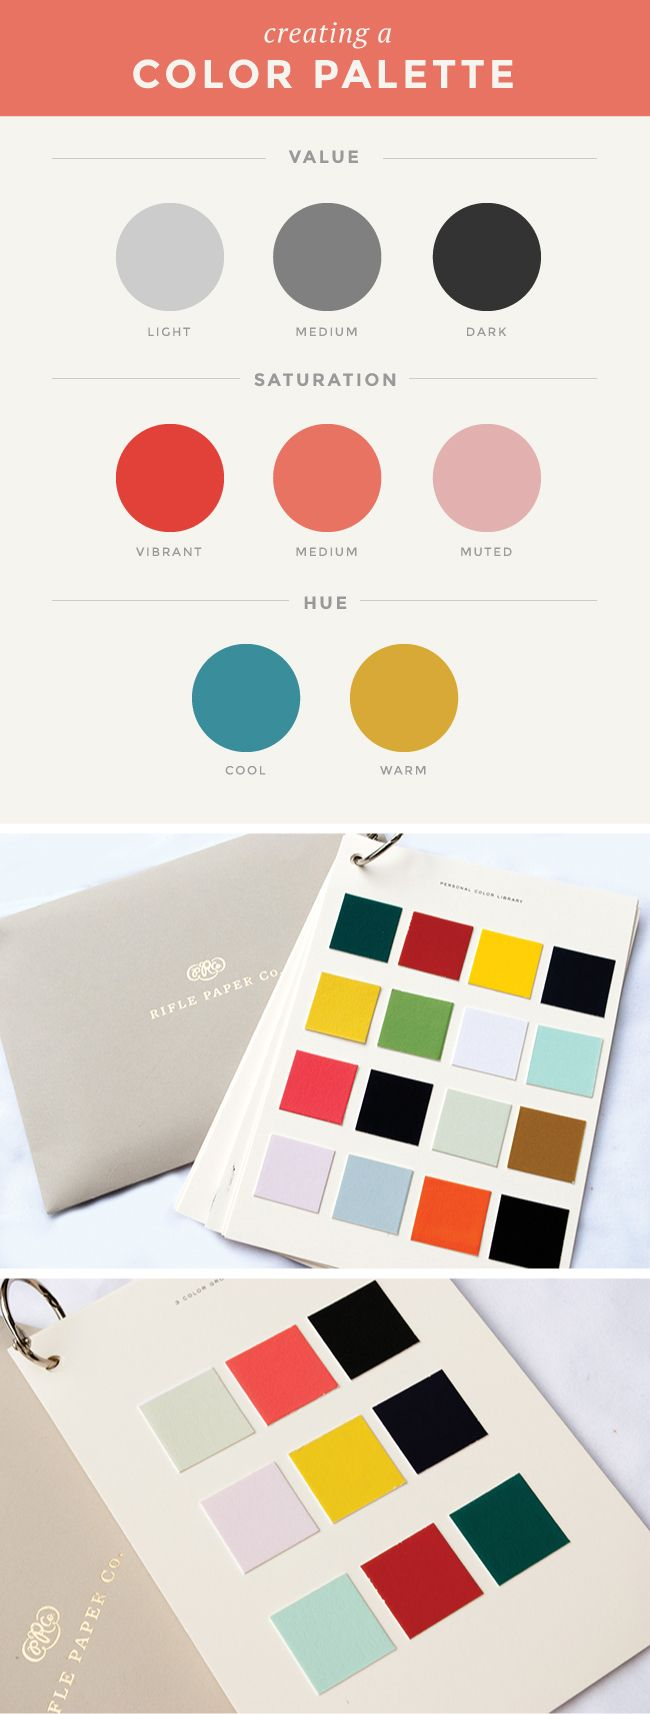 Tips on creating a dynamic color palette | Spruce Rd.